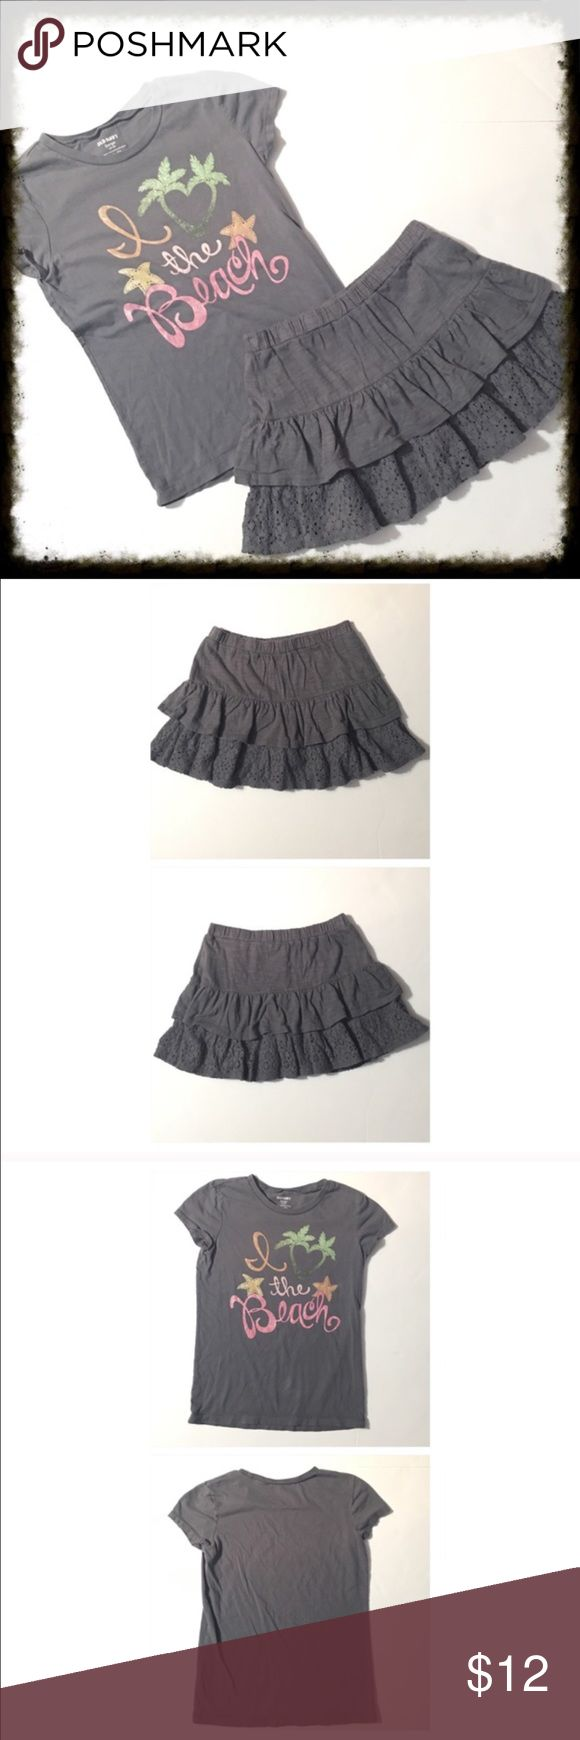 "Girl's Old Navy Skort & Tee Set Size 10/12 Gray skort and gray ""I Love the Beach"" tee are from Old Navy. Both are size 10/12. In good condition. Skort has attached shorts underneath. Matching outfit. Old Navy Matching Sets"